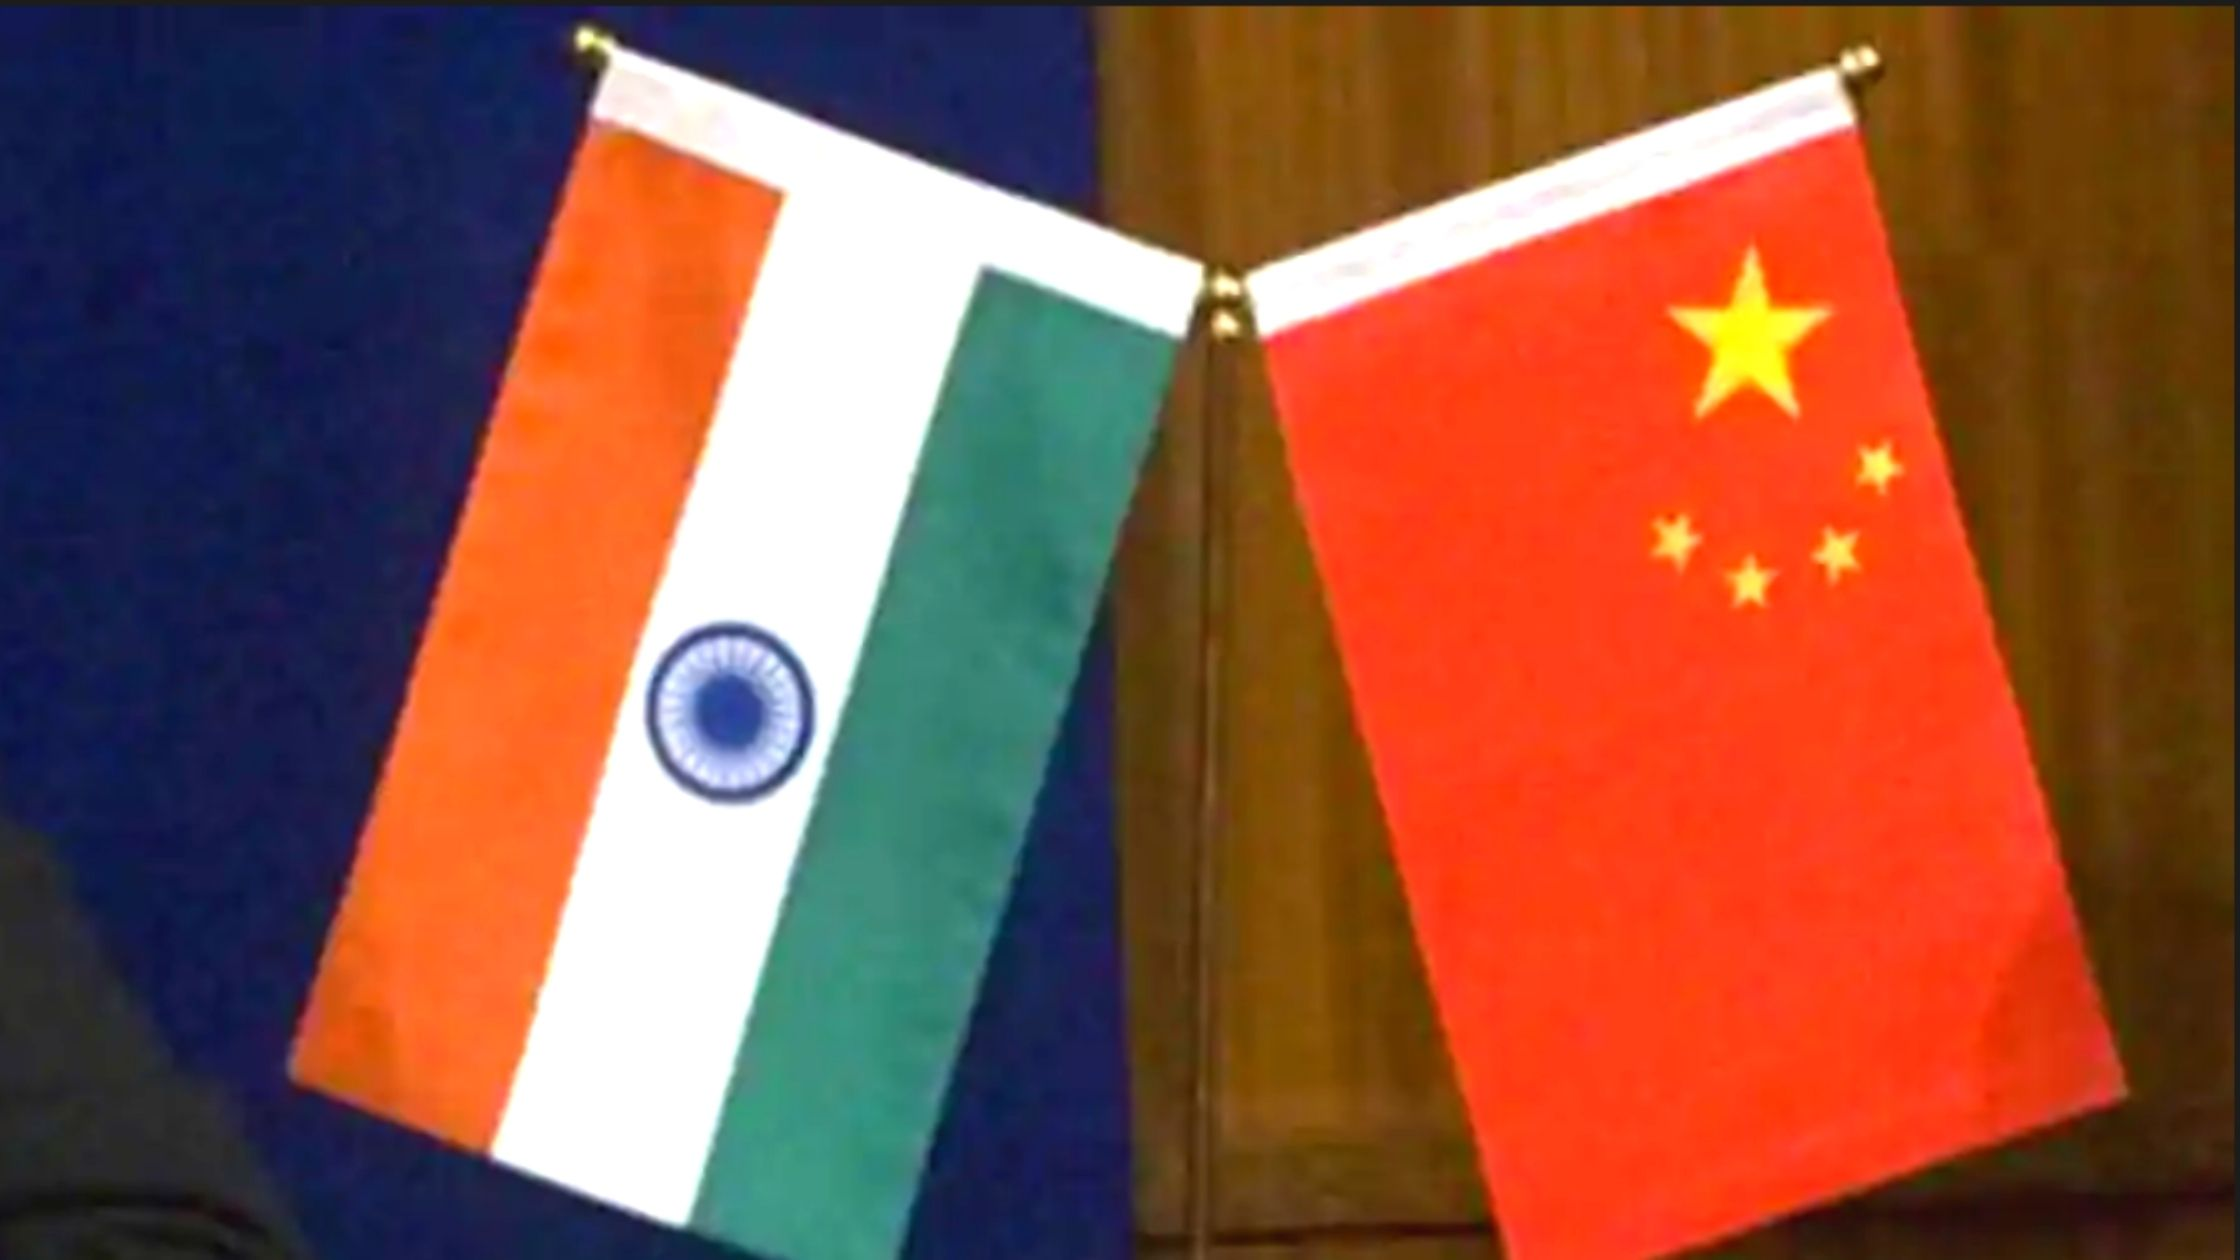 India hammers China's endeavour to raise the Kashmir issue at the UN Security Council.